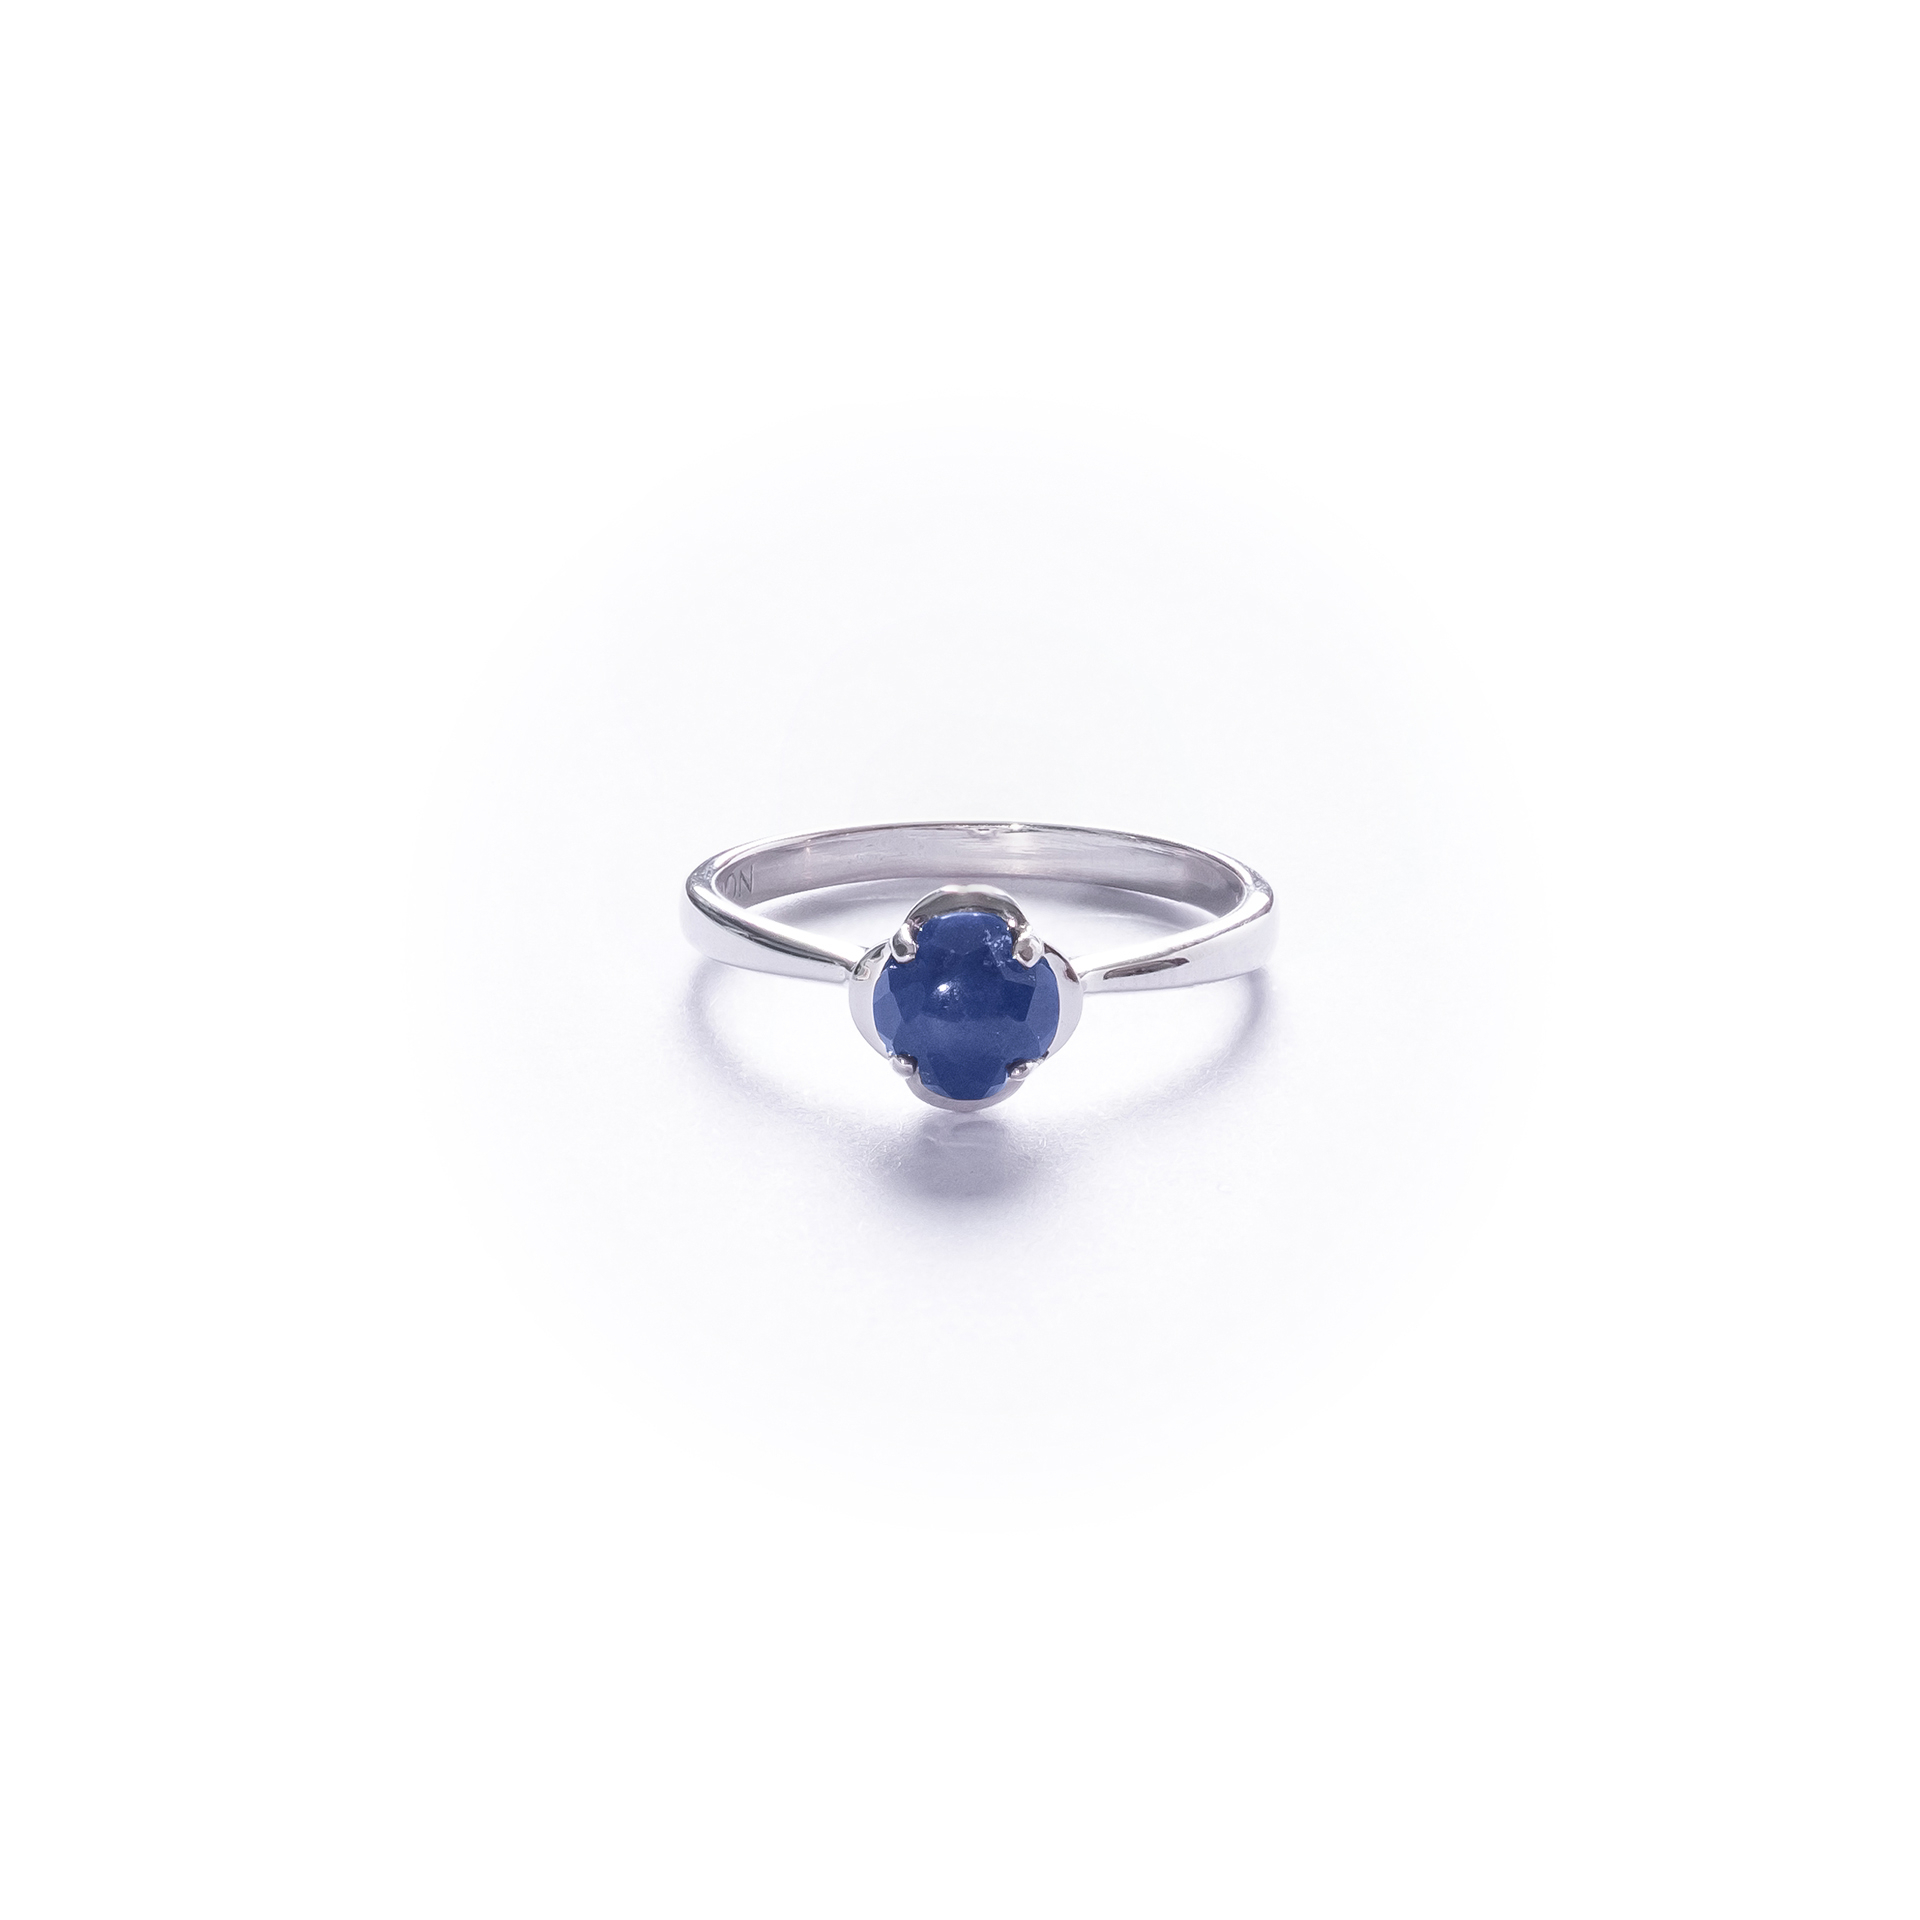 Little Lucky Clover Ring With Lapis Lazuli Throughout Most Recently Released Lucky Four Leaf Clover Open Rings (View 12 of 25)